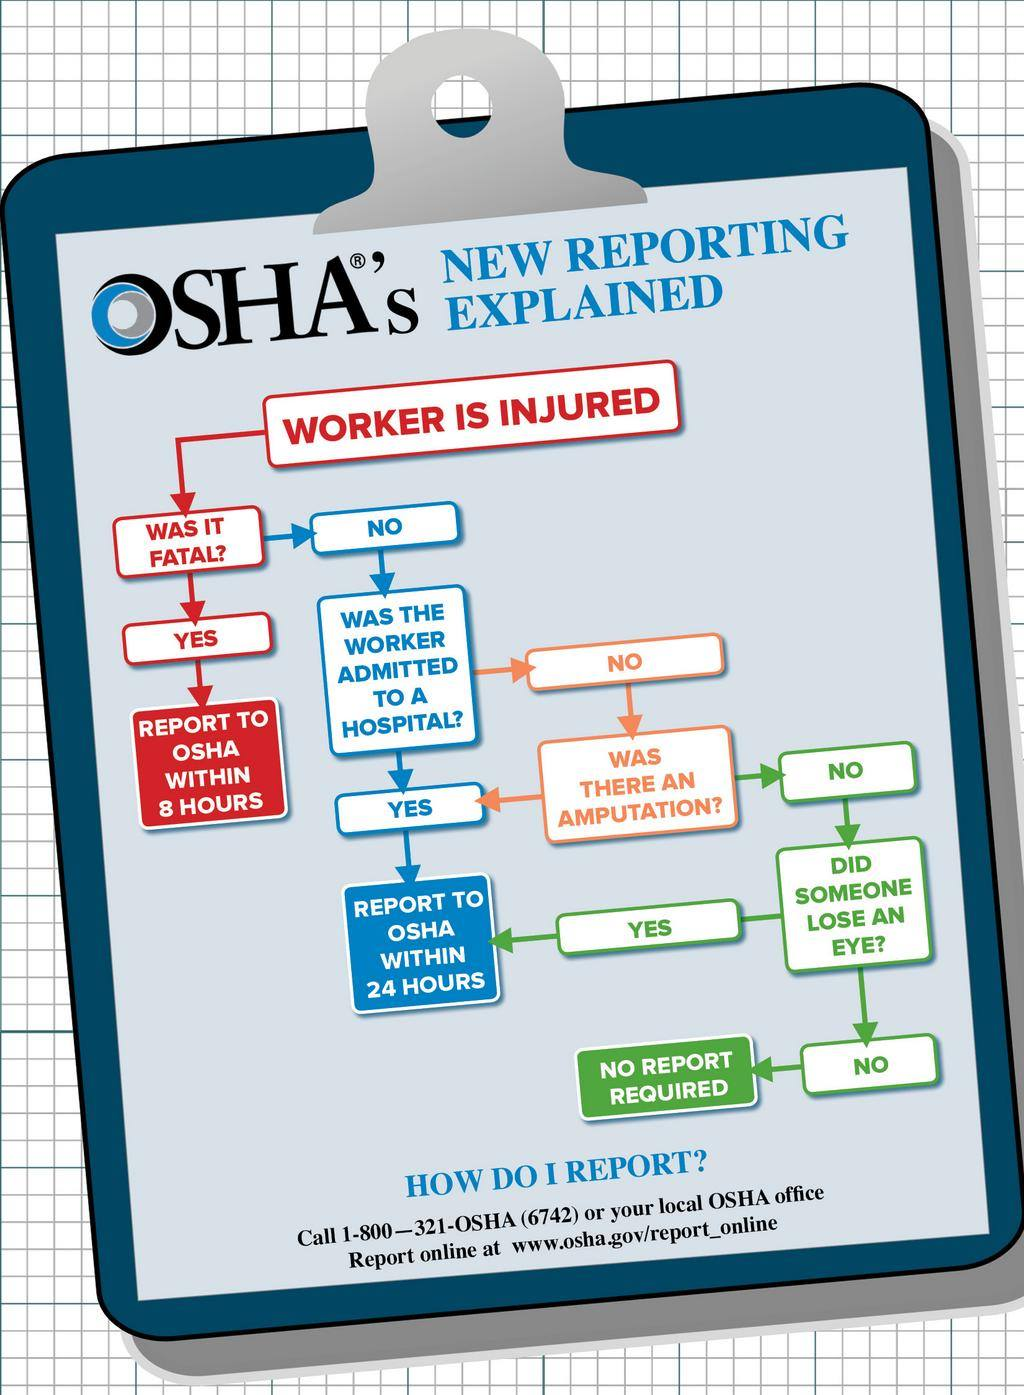 2014 OSHA Recordkeeping flowchart